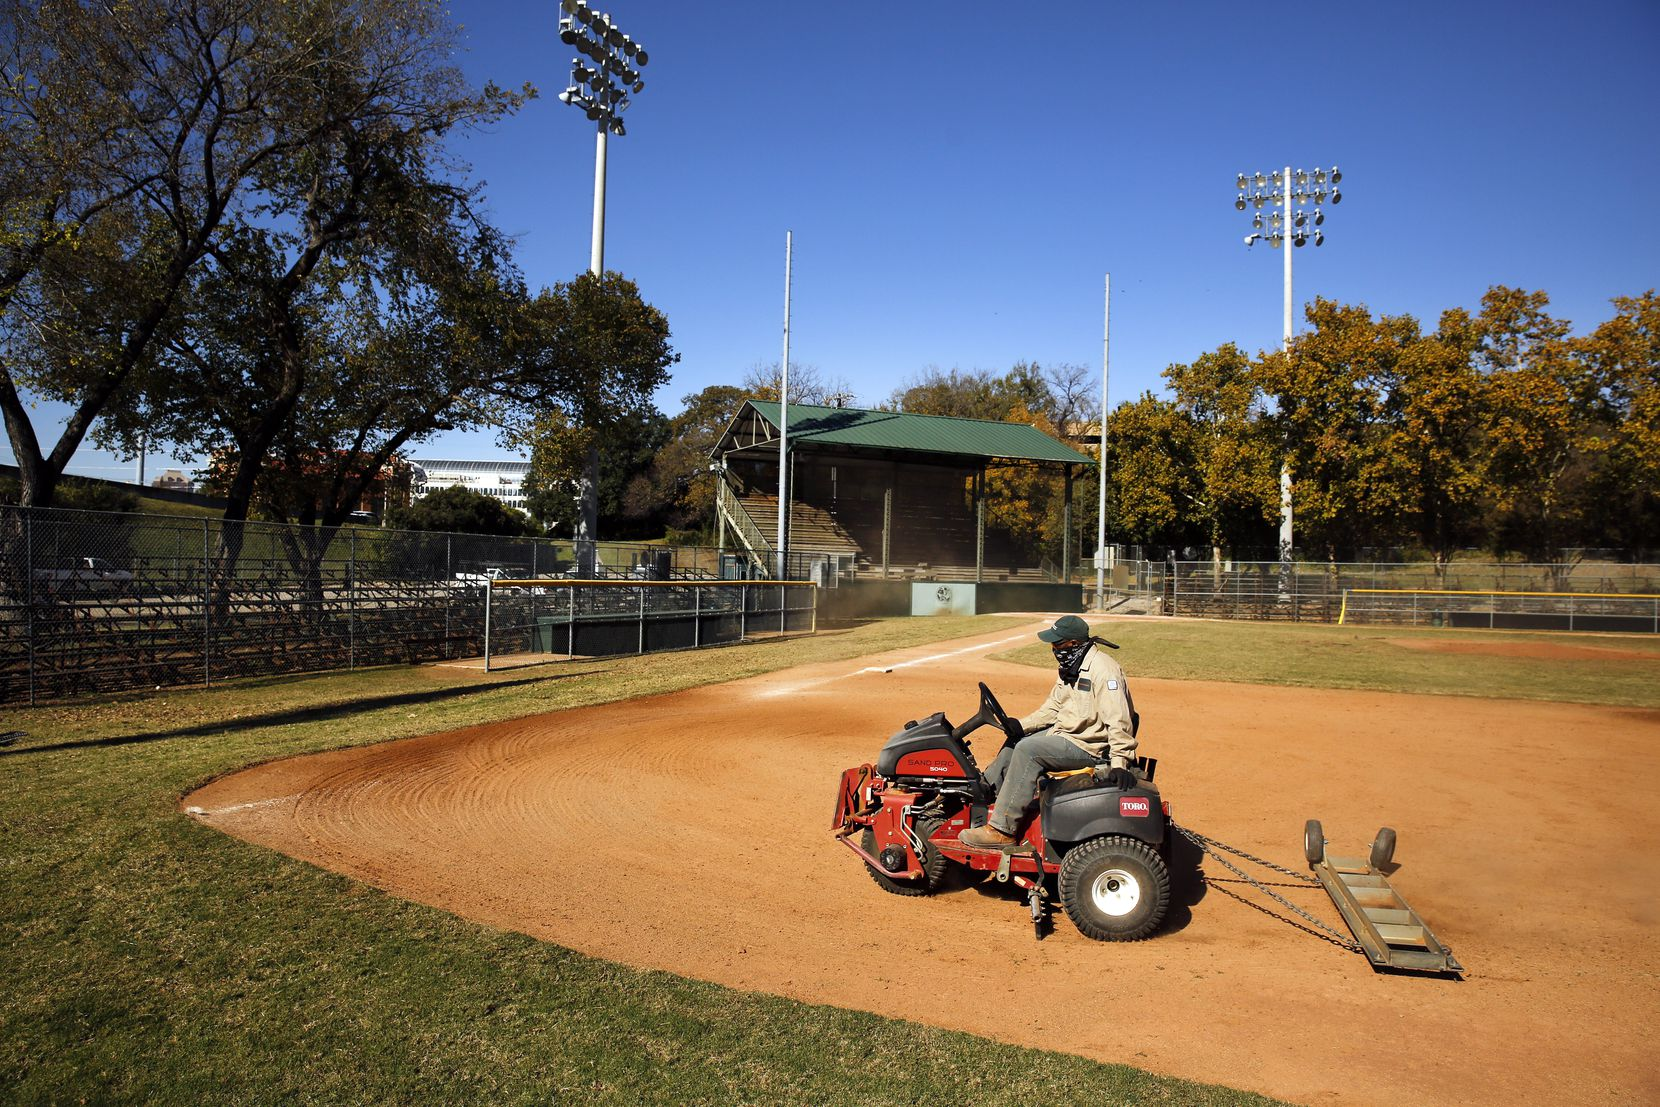 Lawrence Willie of the Dallas Park and Recreation Department rakes the Reverchon ballpark infield. Beginning in 2018, the facility was deemed sufficiently hazardous that North Dallas High School could no longer allow its Bulldogs baseball team to play there, but some community games continue at the park.